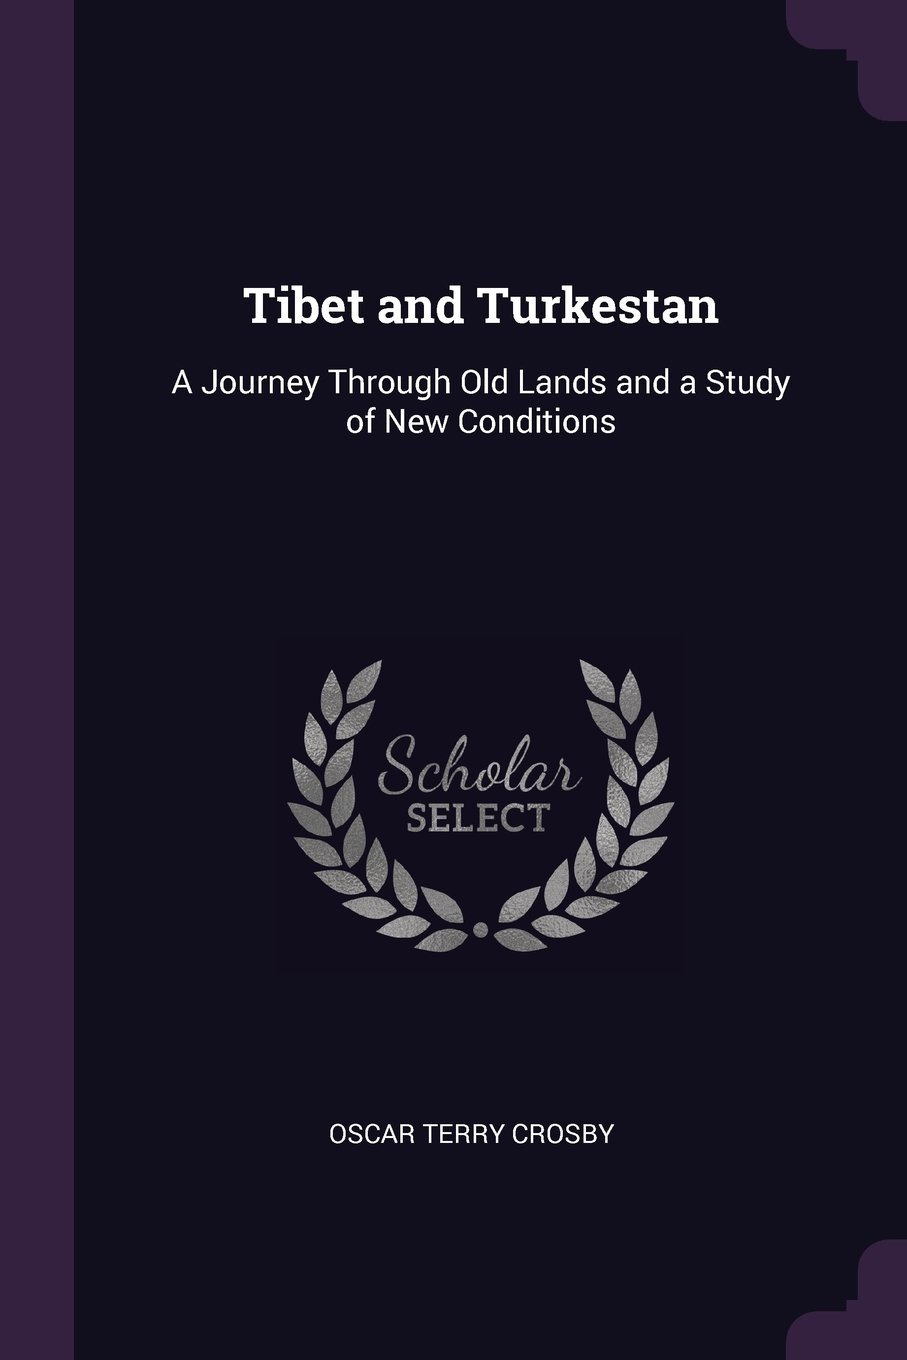 Tibet and Turkestan: A Journey Through Old Lands and a Study of New Conditions pdf